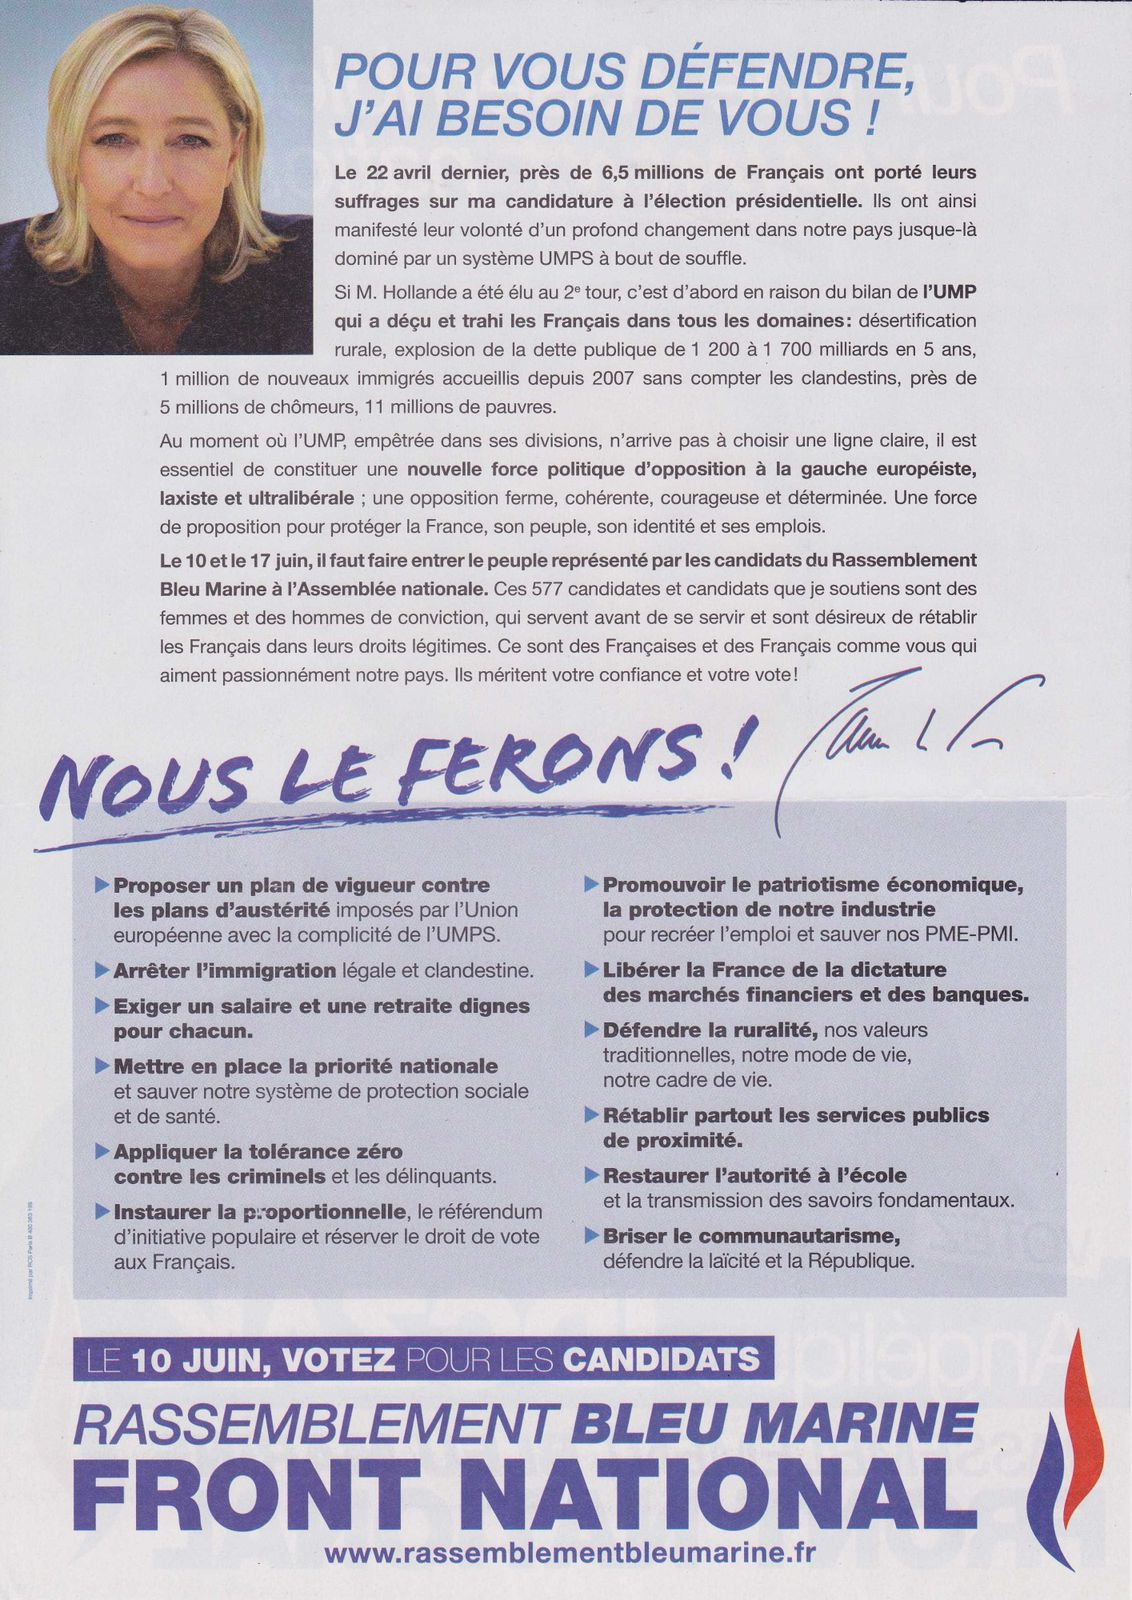 19 2012 Legislative 7eme Circonscription FN